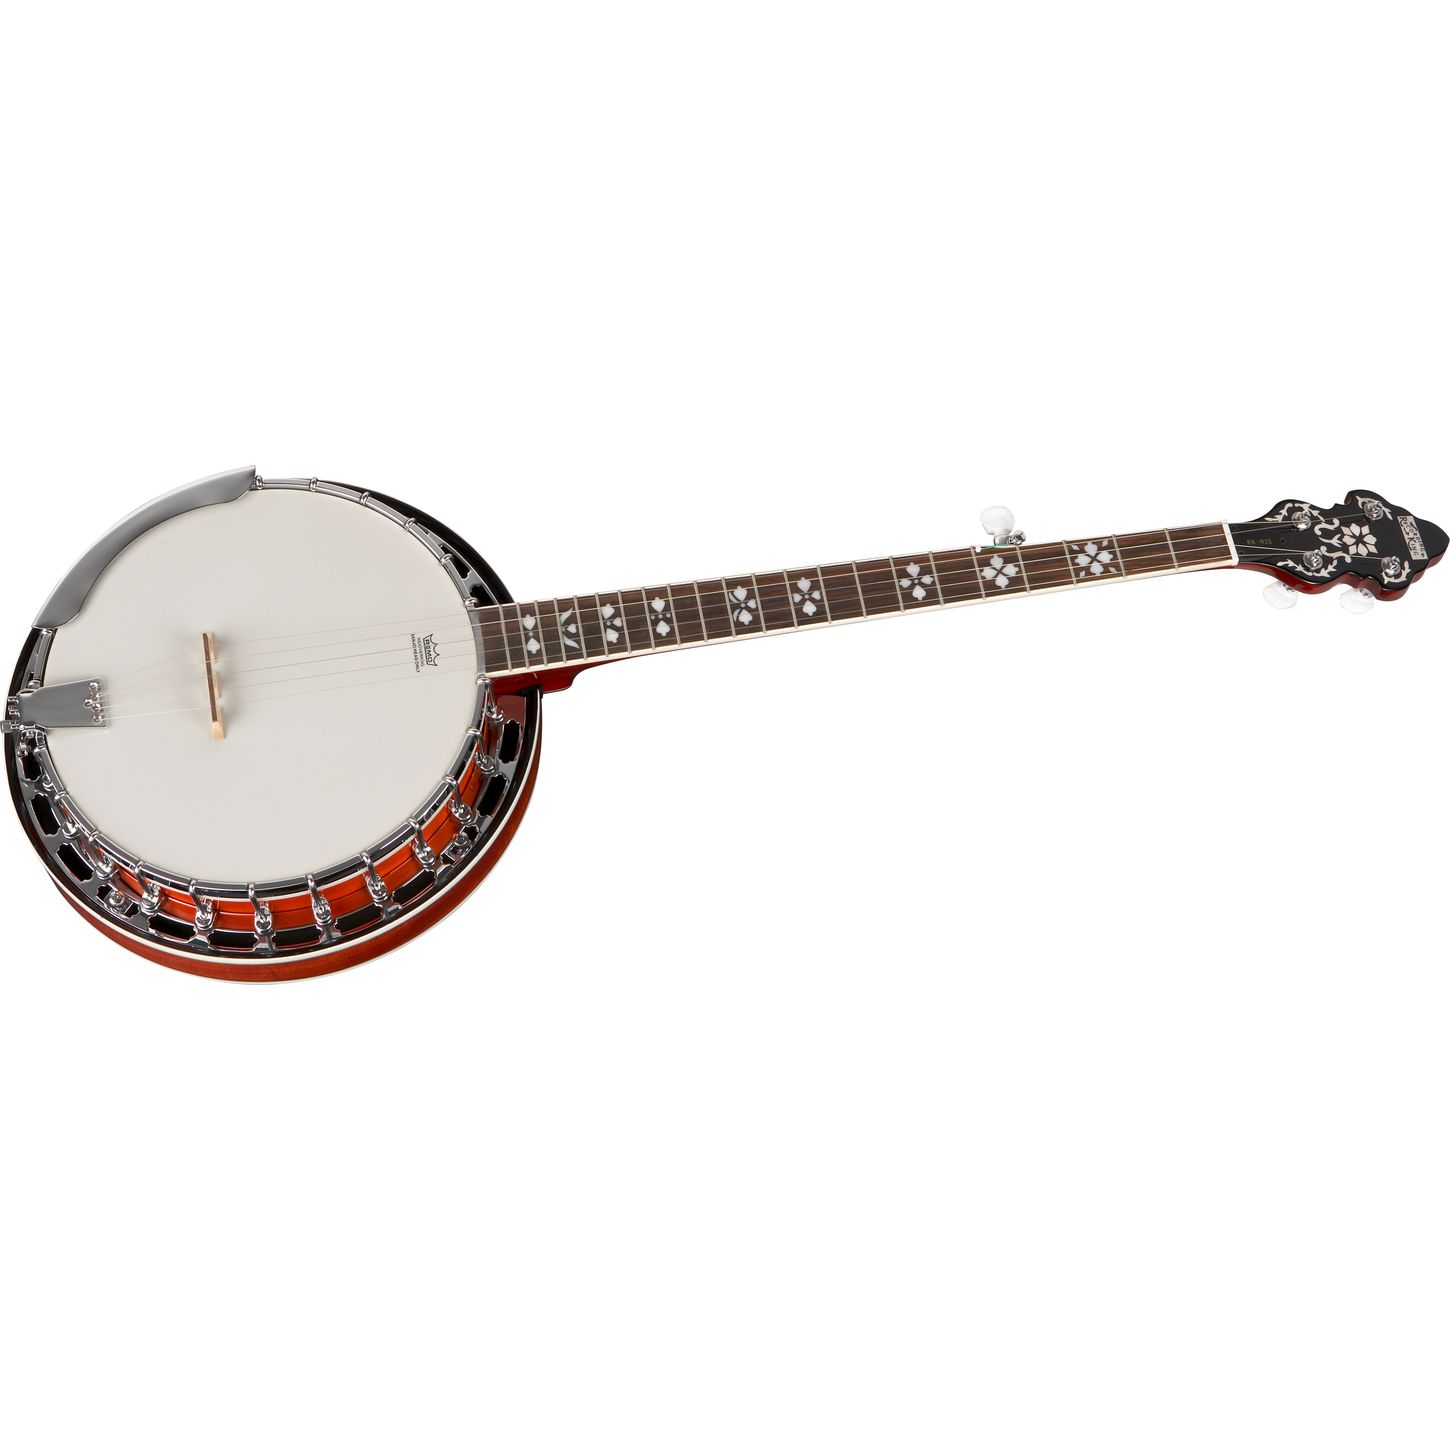 Free Bluegrass Banjo Cliparts, Download Free Clip Art, Free.